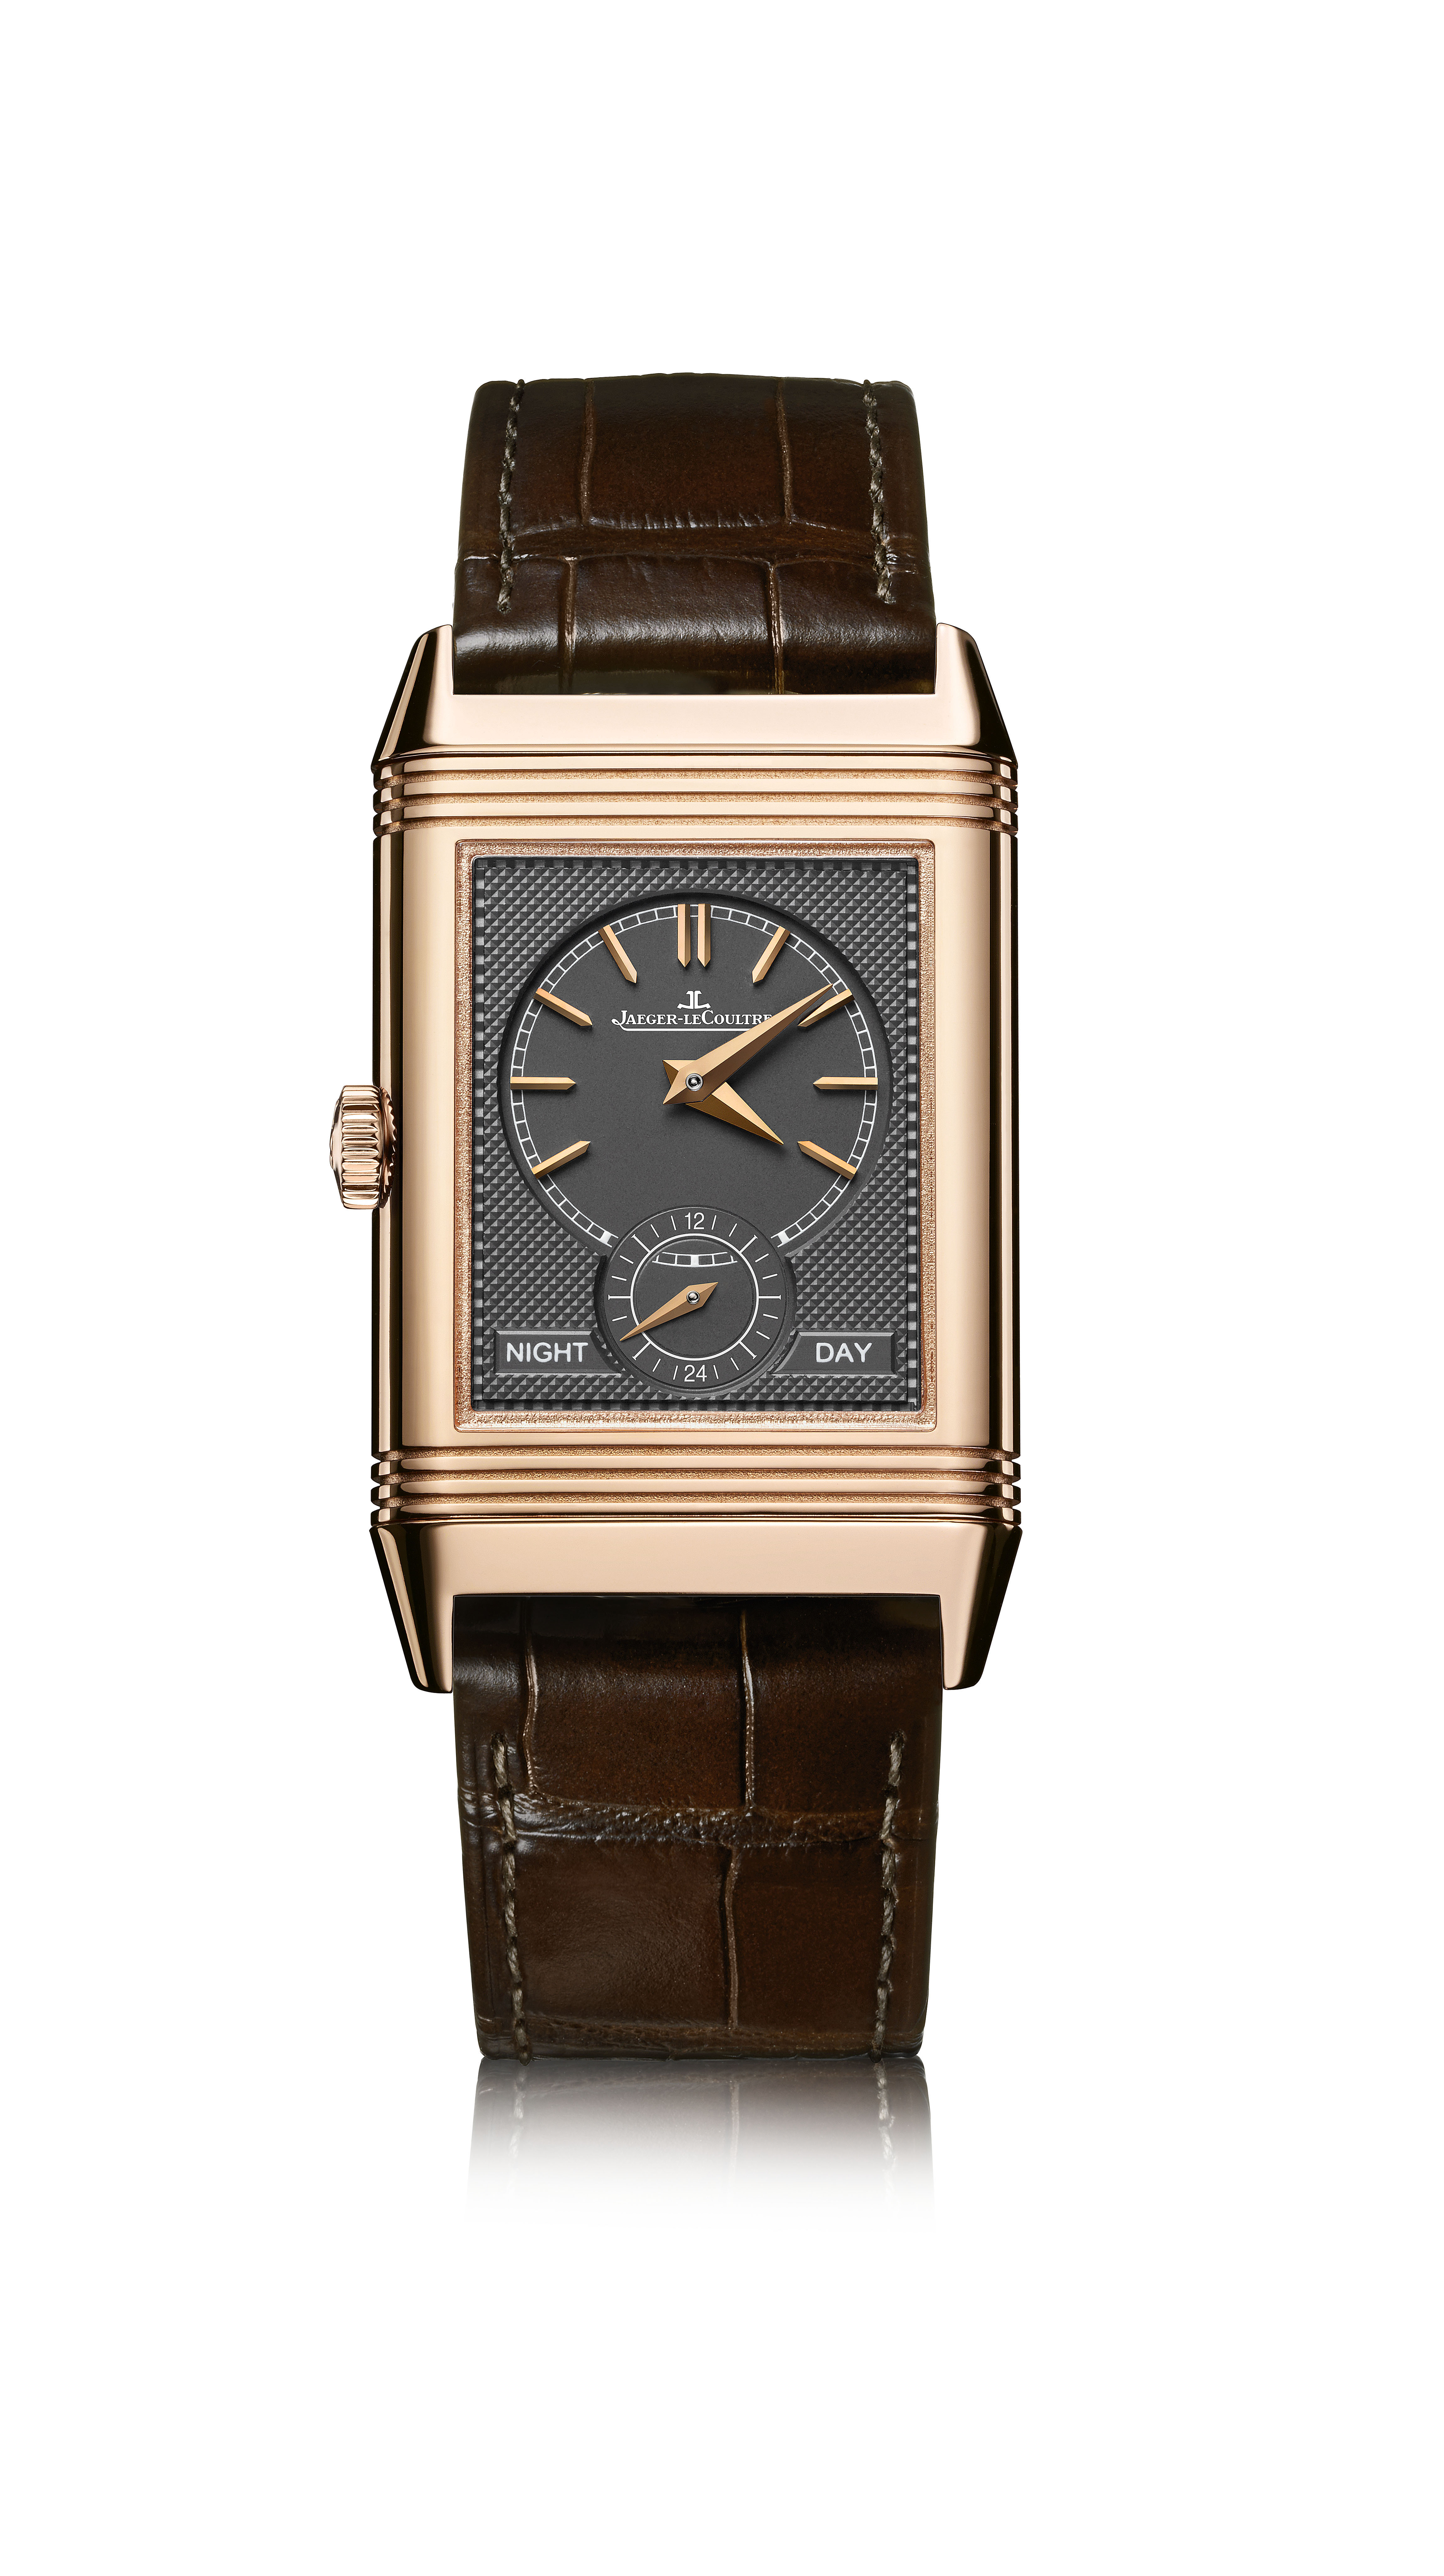 Jaeger-LeCoultre Reverso Tribute Duoface in pink gold_back.jpg